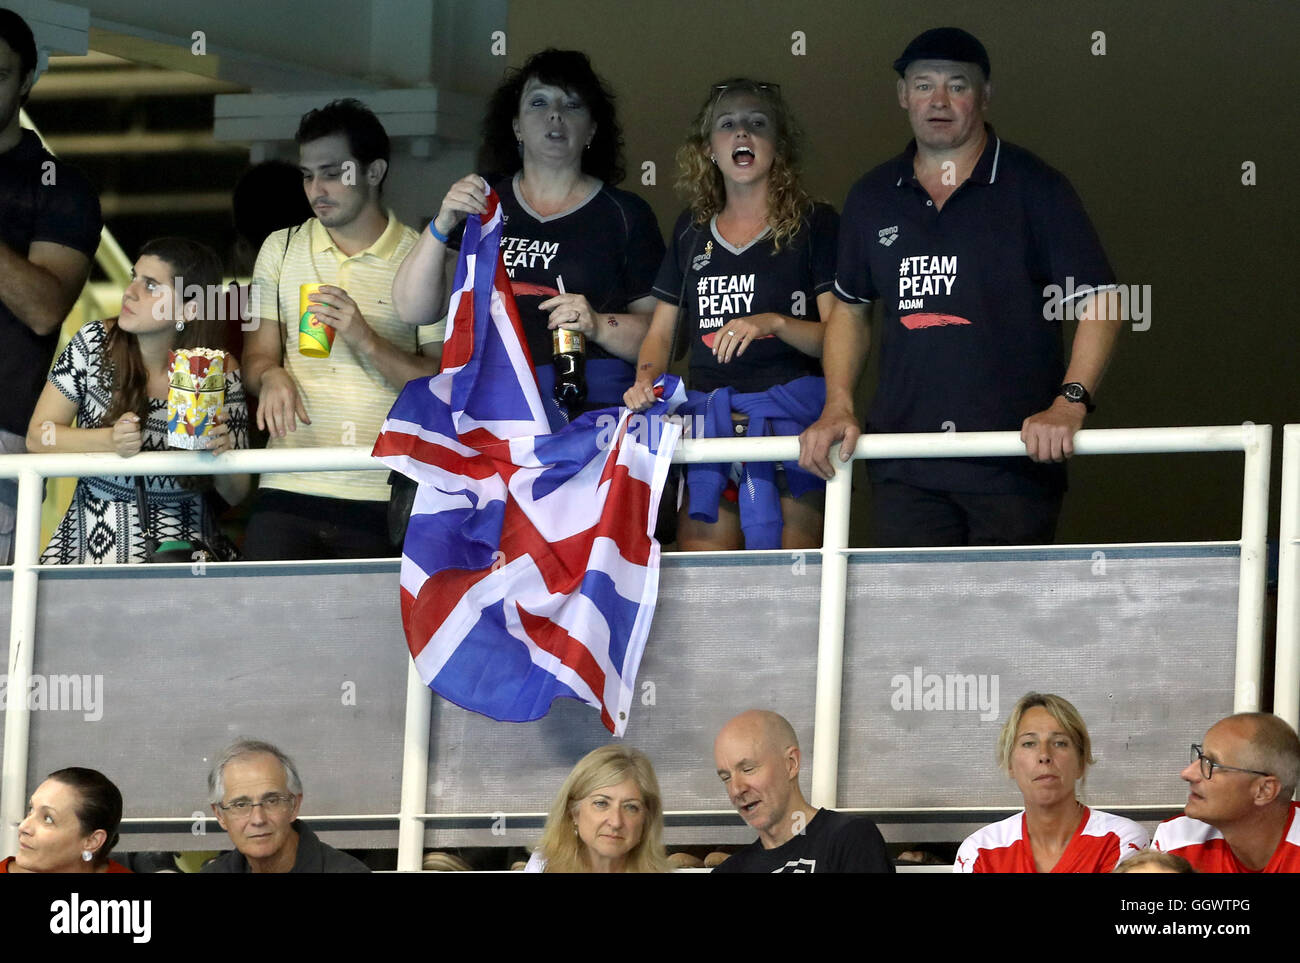 Mark and Caroline Peaty await the Men's 100m Final where their son will Adam will race for an Olympic medal - Stock Image